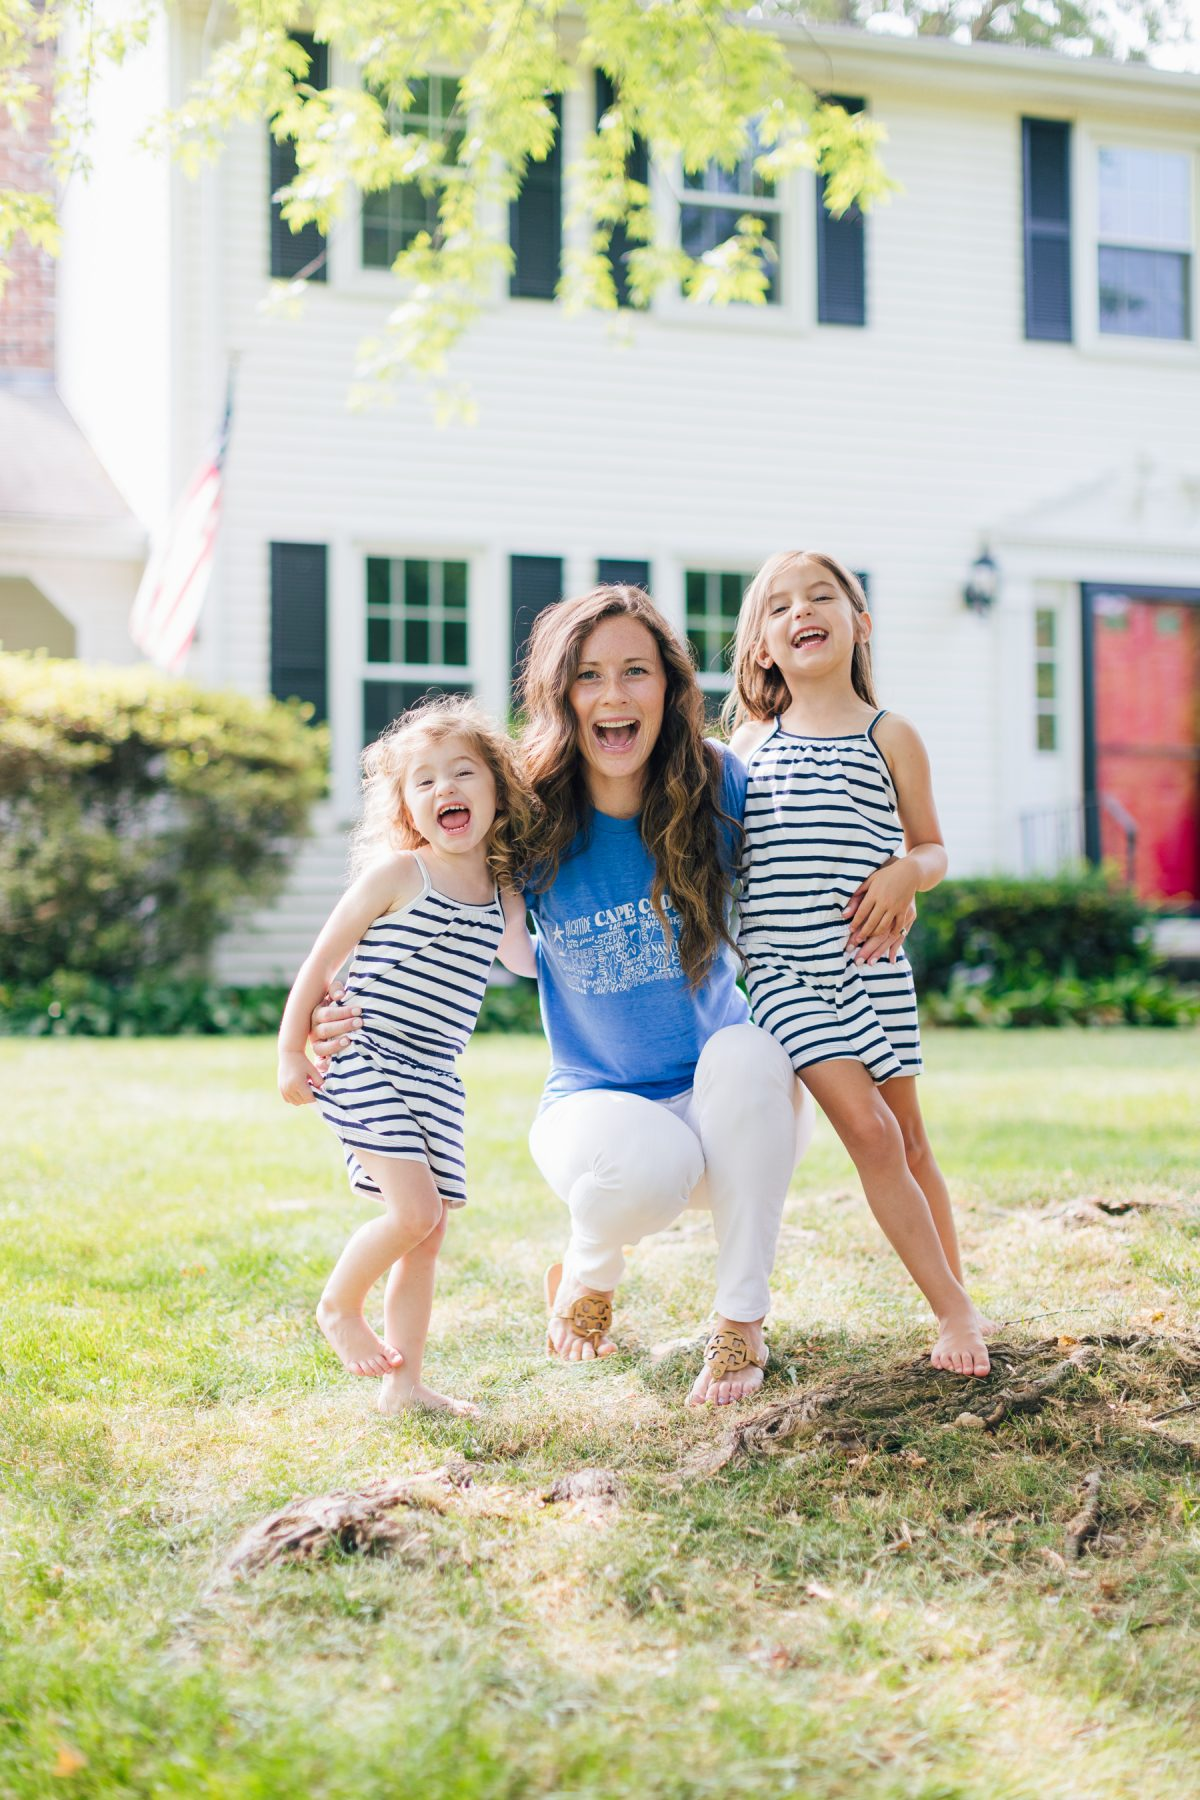 Caitlin Houston with Daughters - Connecticut Based Life and Style Mom Blogger